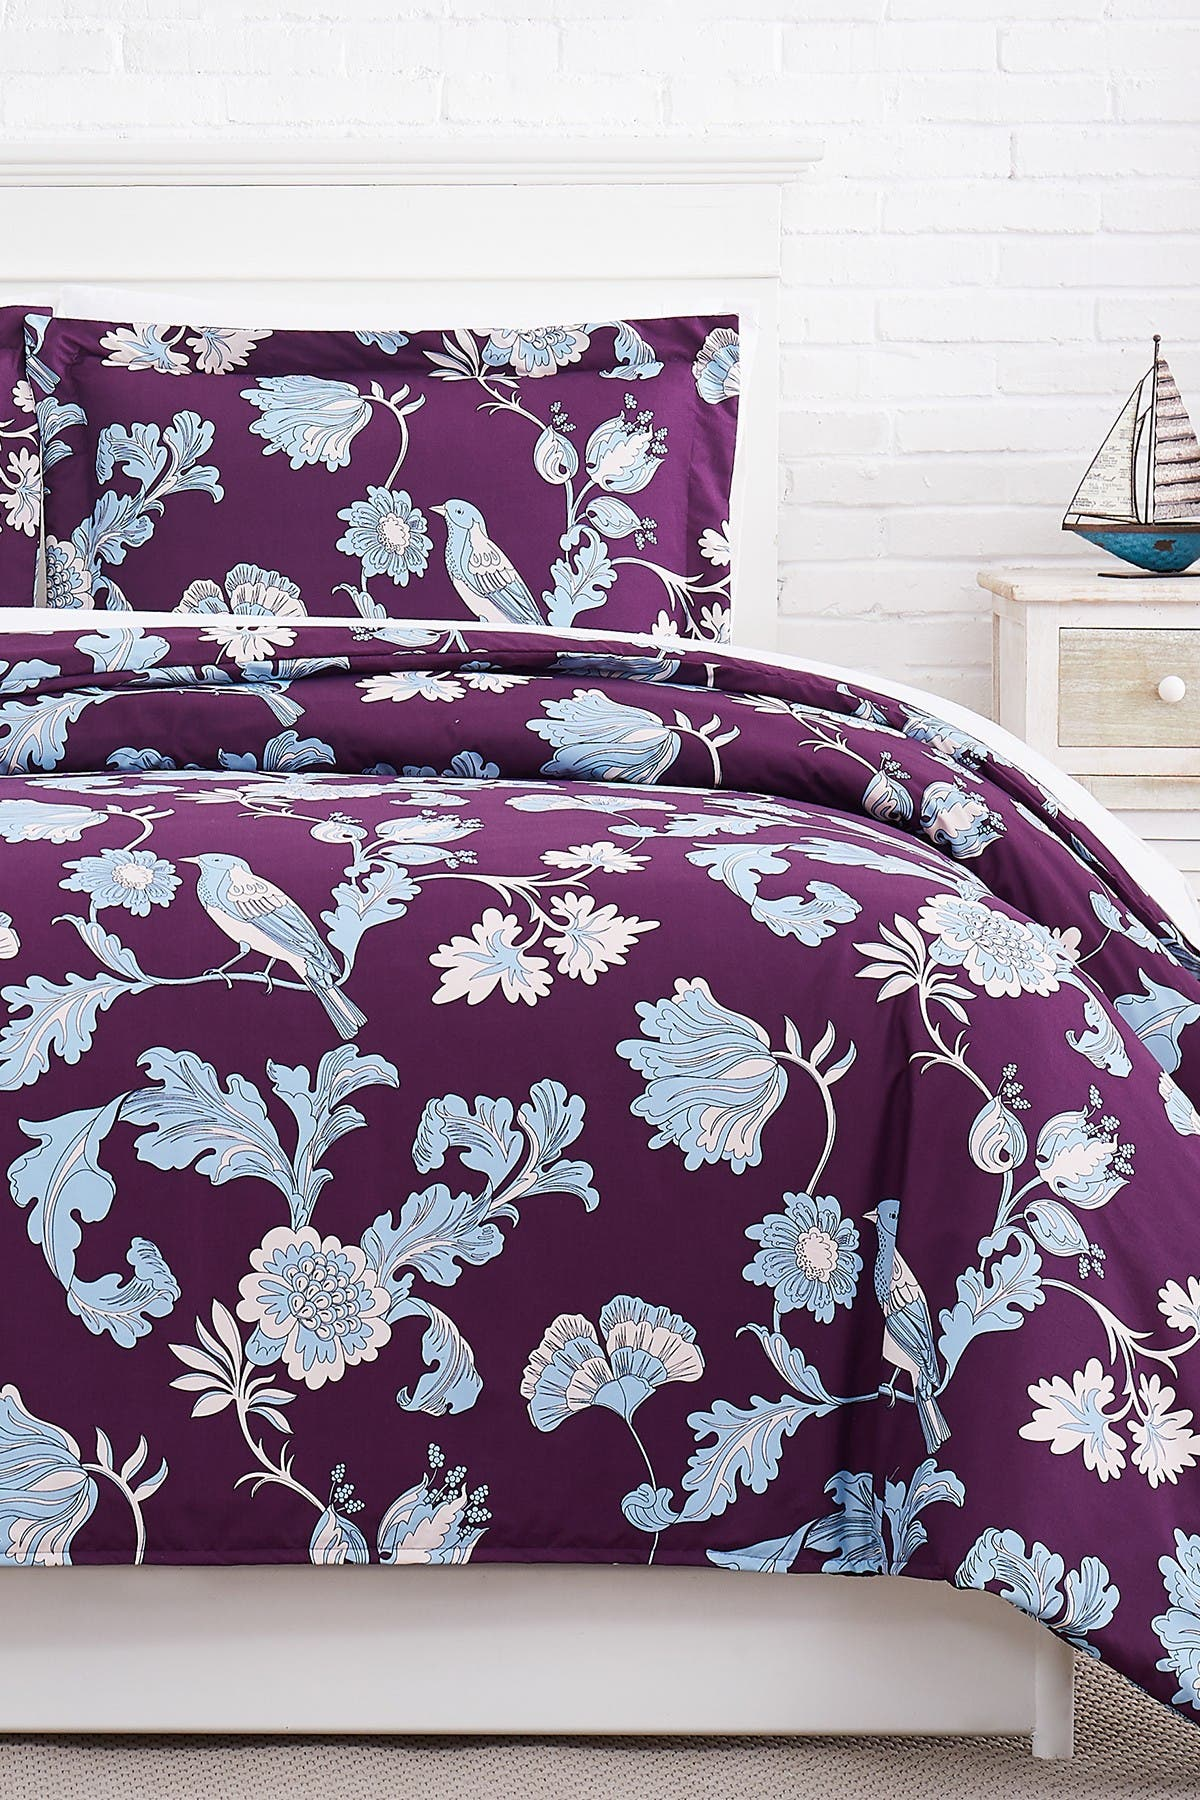 Image of SOUTHSHORE FINE LINENS Premium Collection Oversized Duvet Cover 3-Piece Set - King/California King